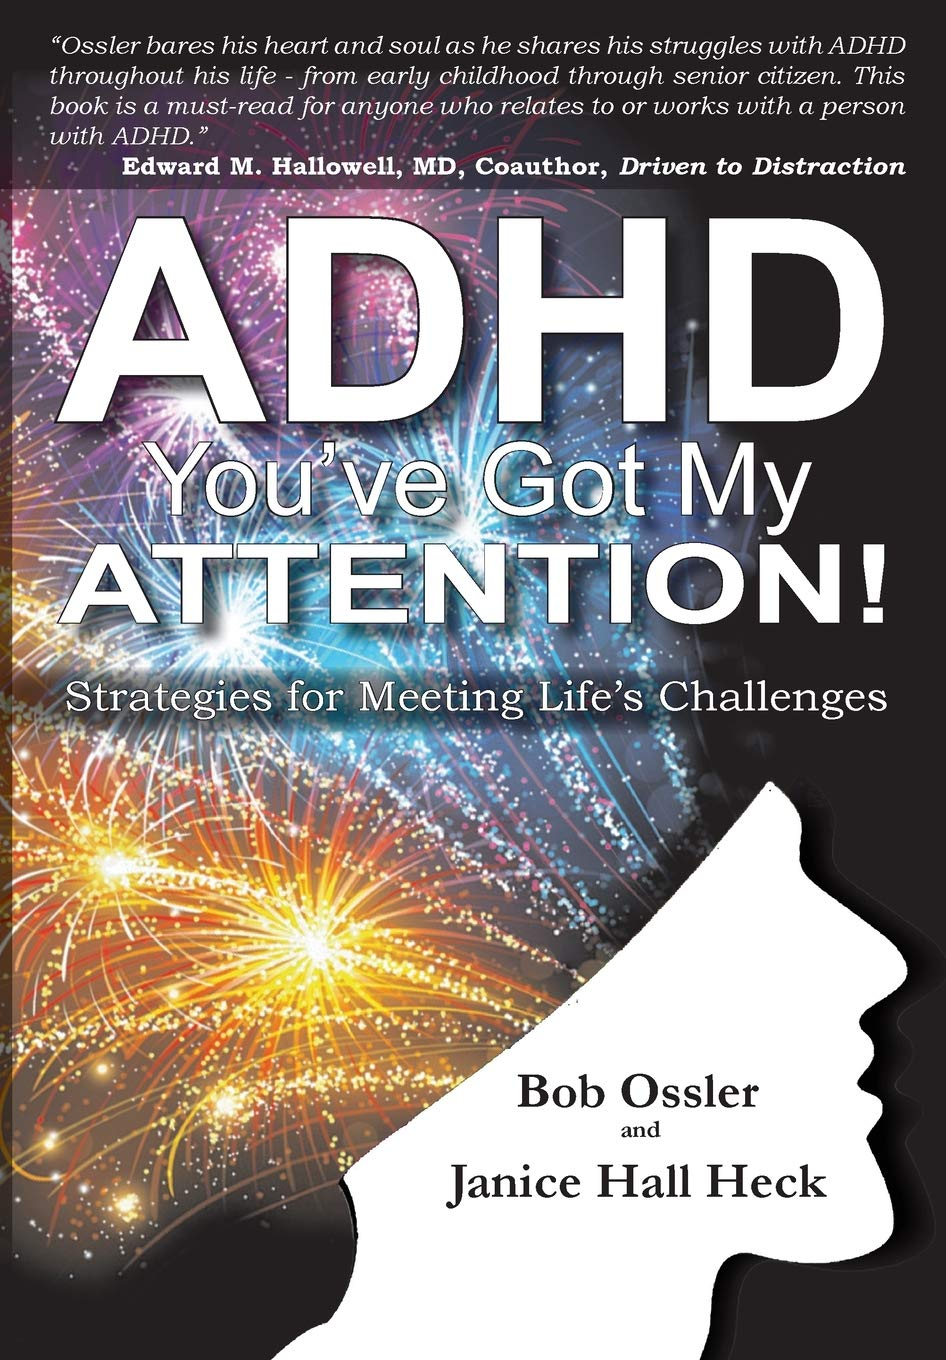 ADHD Attention Strategies Meeting Challenges product image